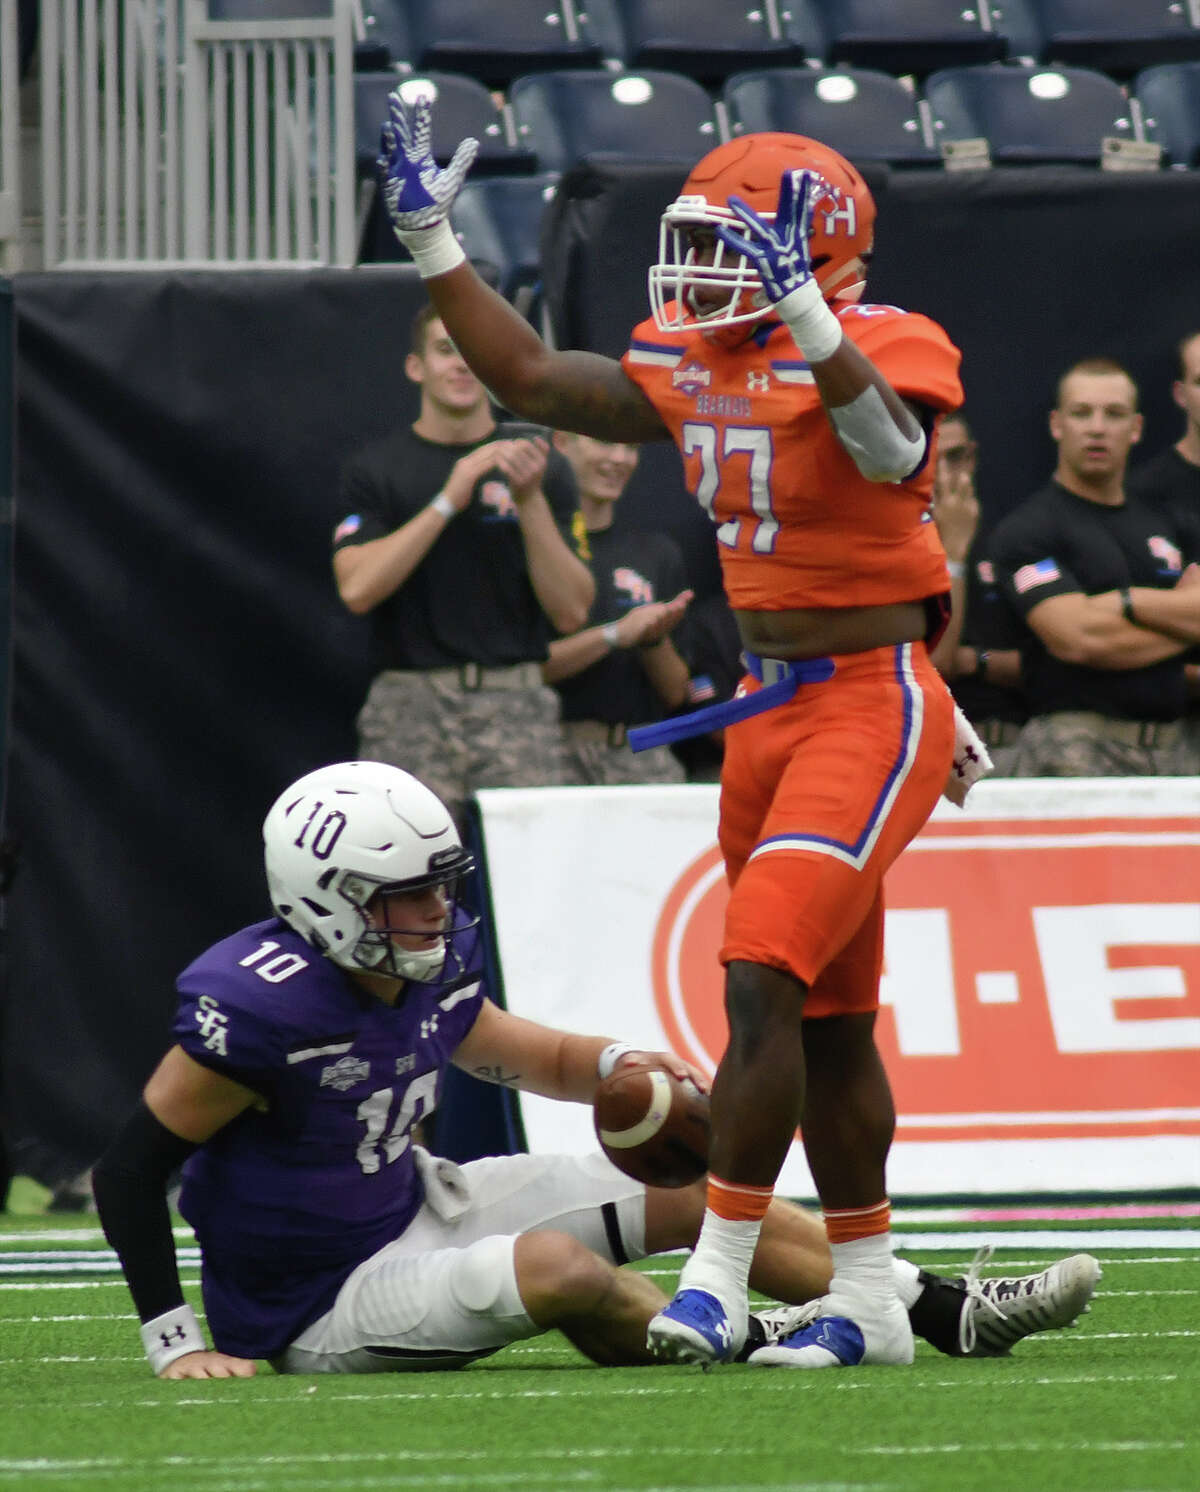 Sam Houston State junior defensive tackle Chris Stewart (97) celebrates a first quarter sack of Stephen F. Austin sophomore quarterback Jake Blumrick (10) during their Battle of the Piney Woods clash at NRG Stadium in Houston on Saturday, Oct. 7, 2017. (Photo by Jerry Baker/Freelance)